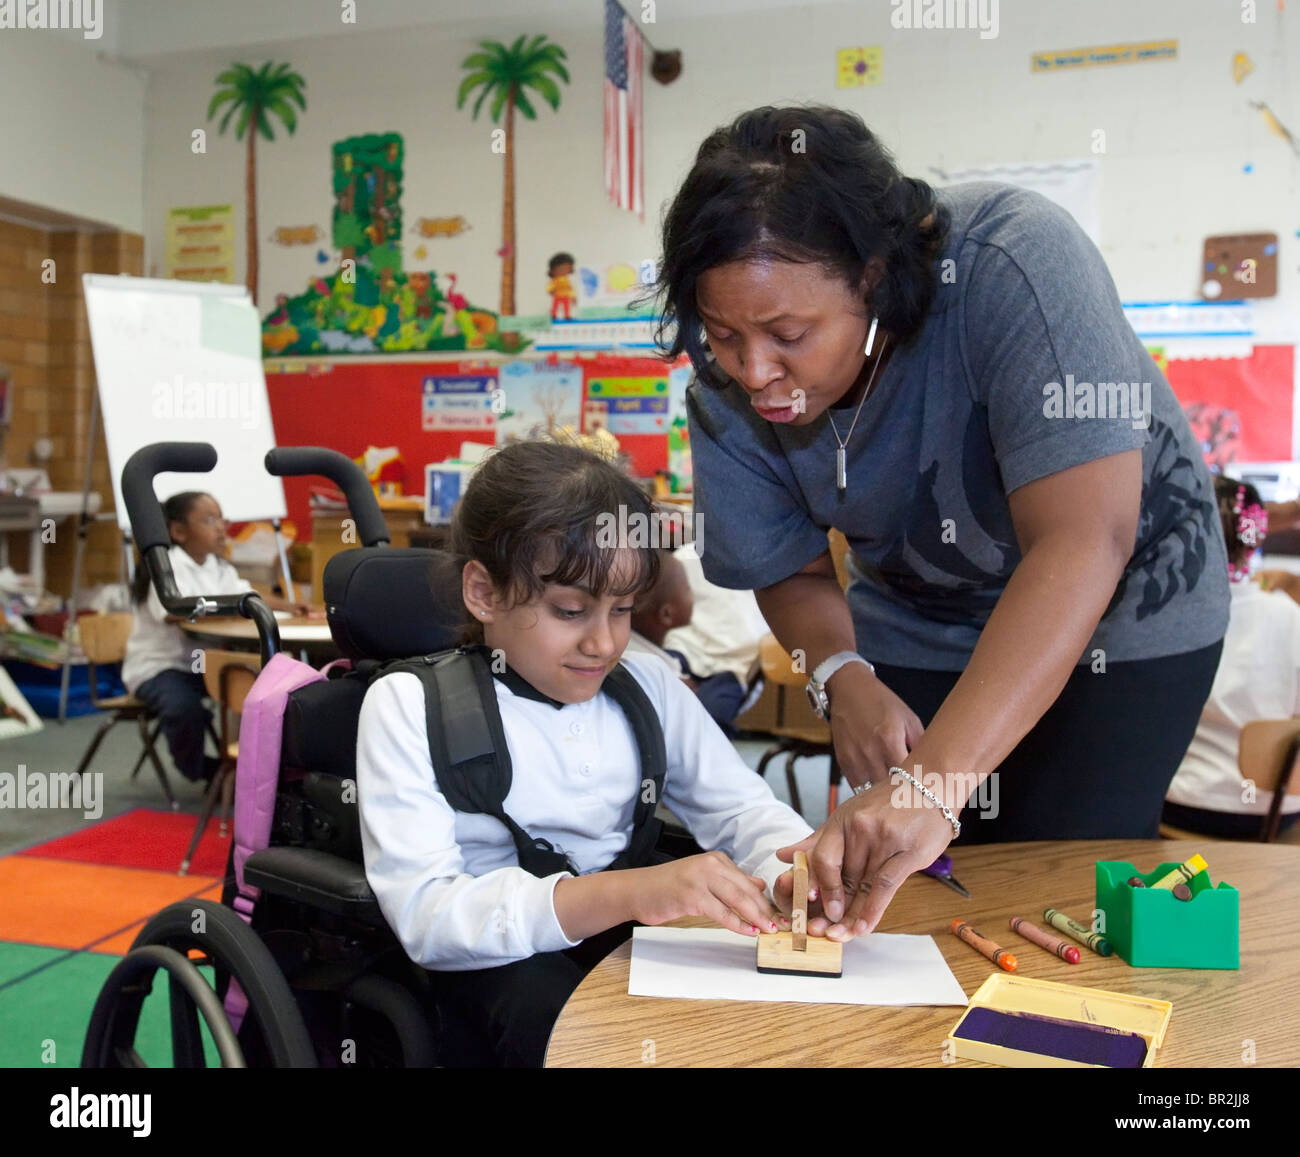 Elementary School Classroom in Detroit - Stock Image